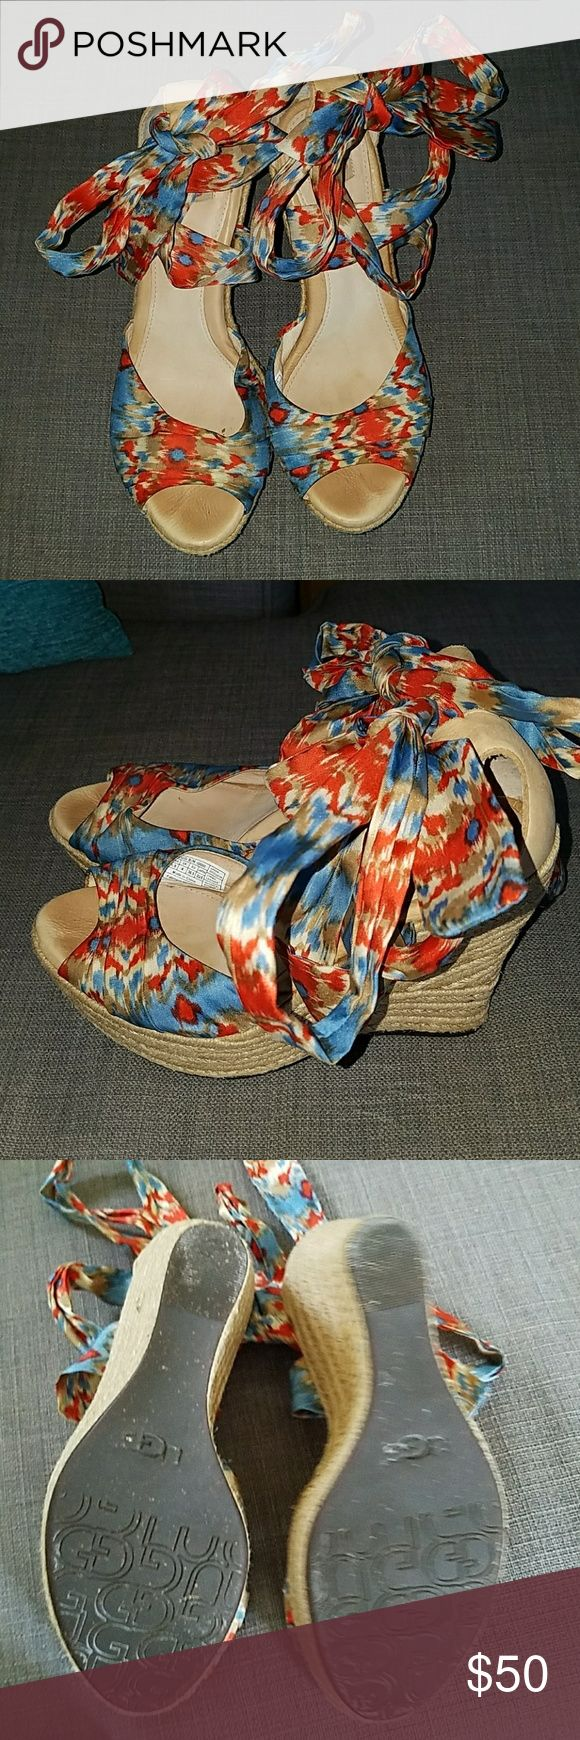 Ugg Wedge Sandals Ugg Wedge sandals . They are in very good condition. Size 5 1/2 UGG Shoes Wedges